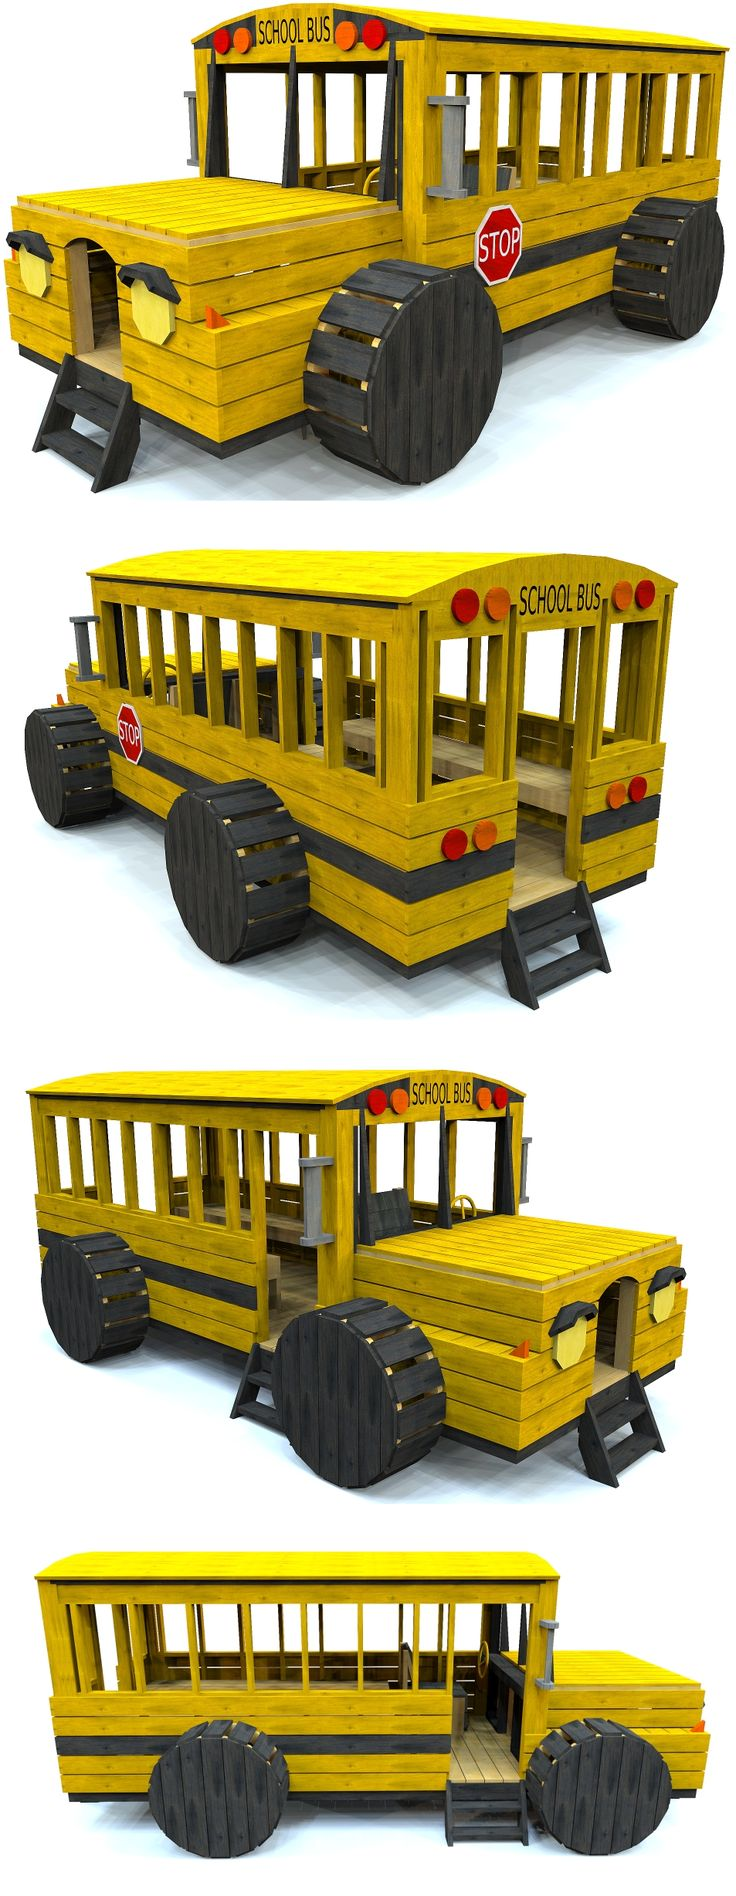 The Classic yellow school bus, now it wood form!  Perfect for kids aged 3-9. Download the blueprints from paulsplayhouses.com